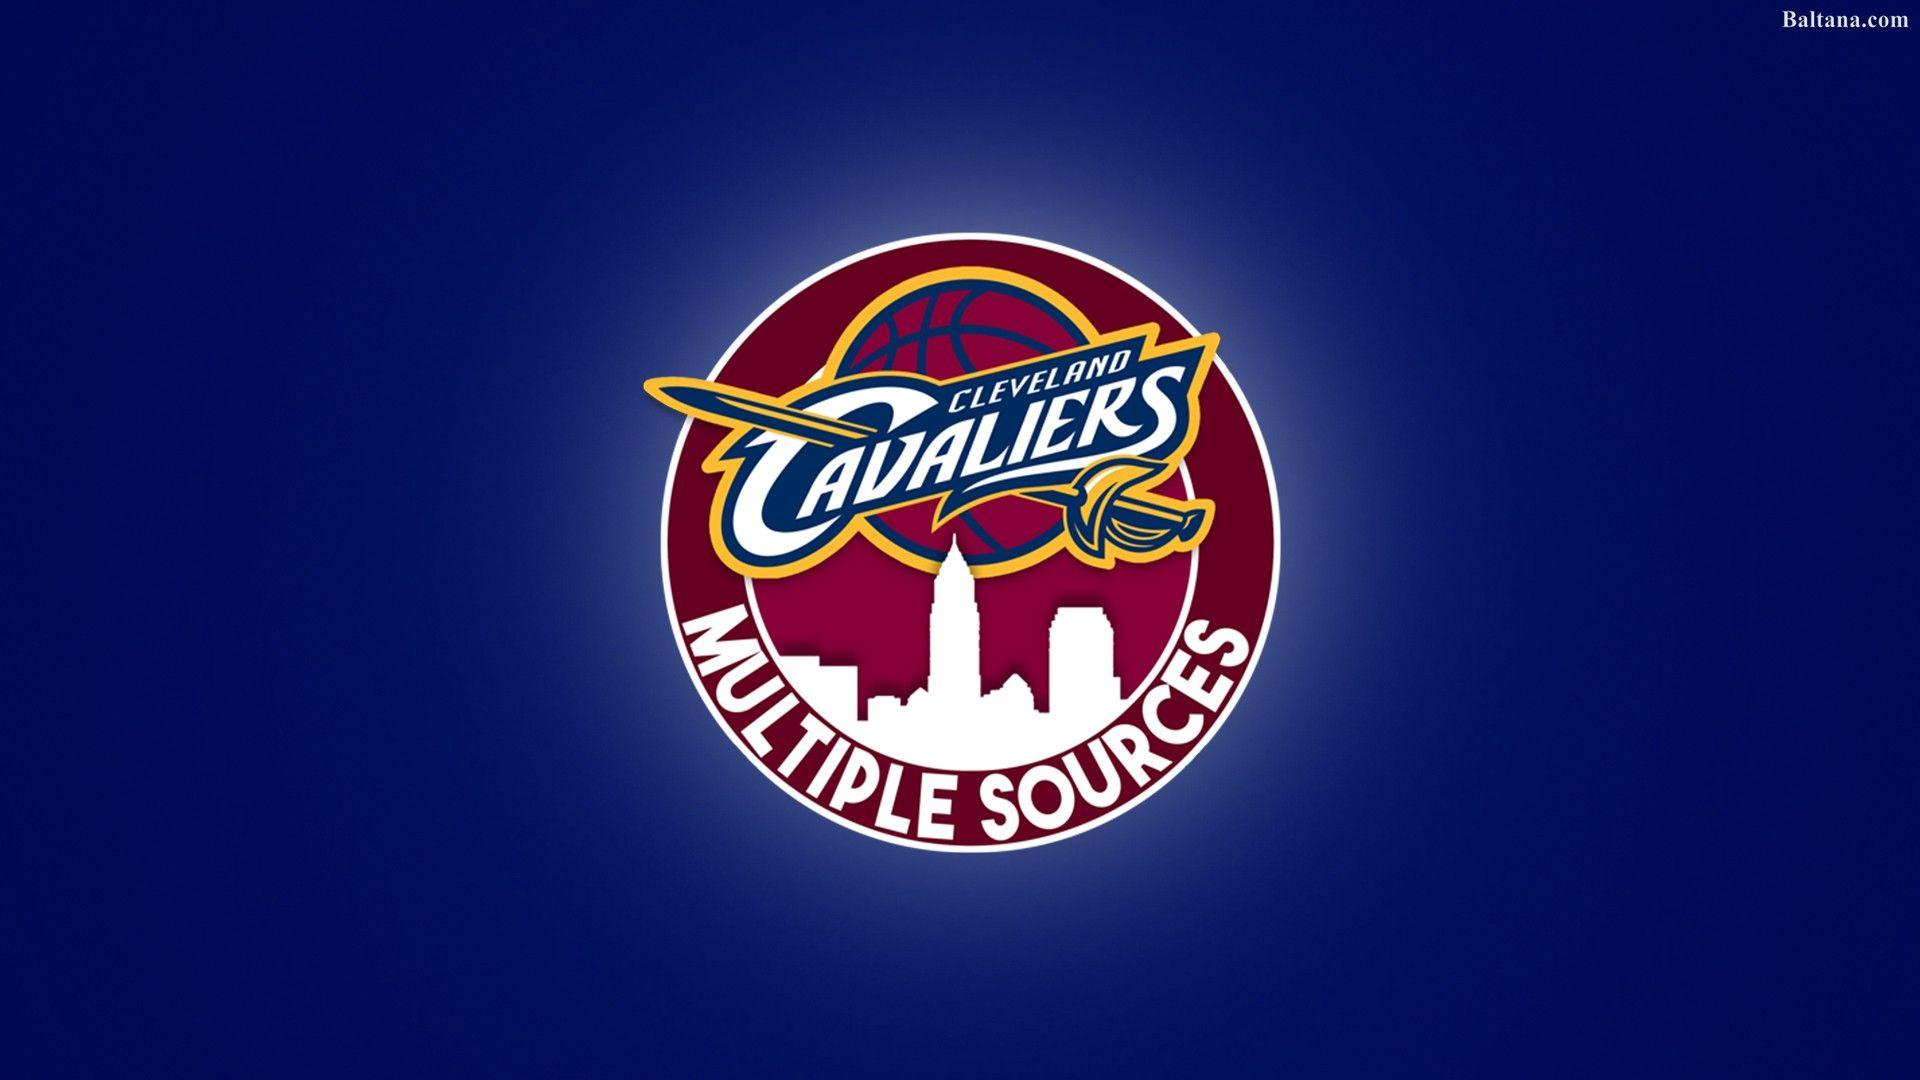 Cleveland Cavaliers Wallpapers HD Backgrounds, Image, Pics, Photos